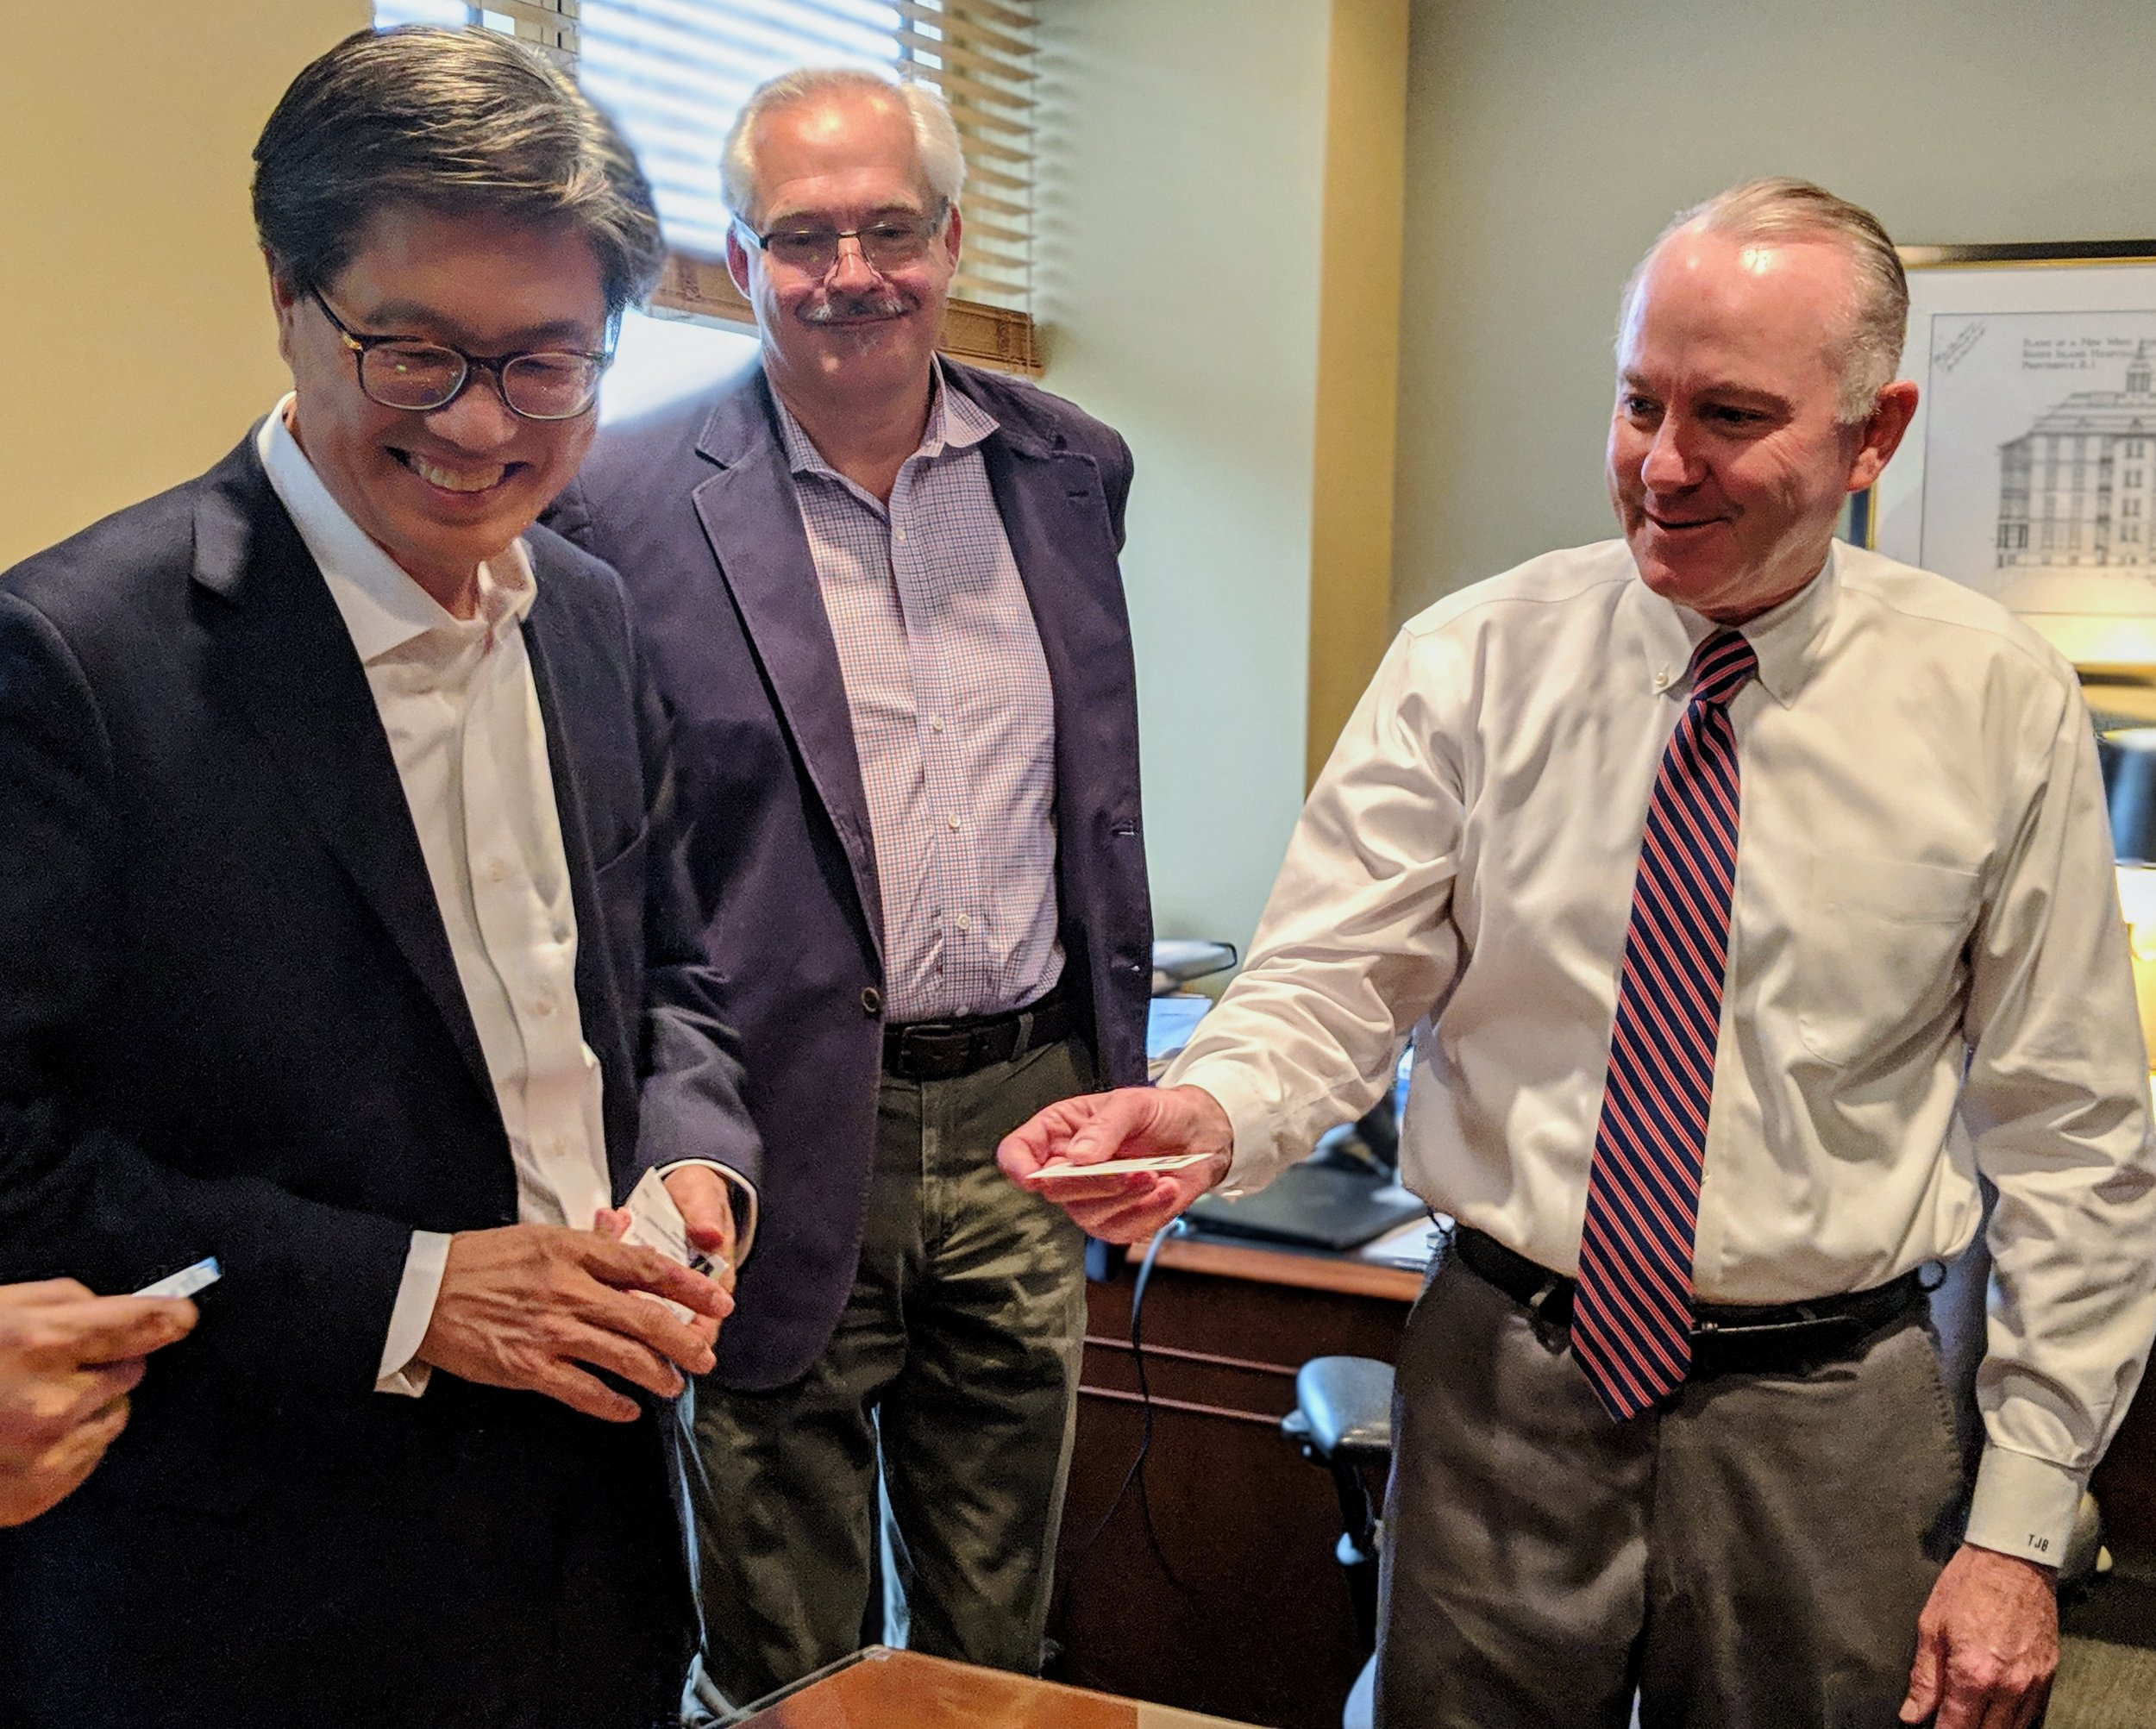 Deog-Seong Oh, Ph.D., President of Chungnam National University, Aidan Petrie, NEMIC Managing Partner, and Timothy Babineau, MD, President of Lifespan Health System